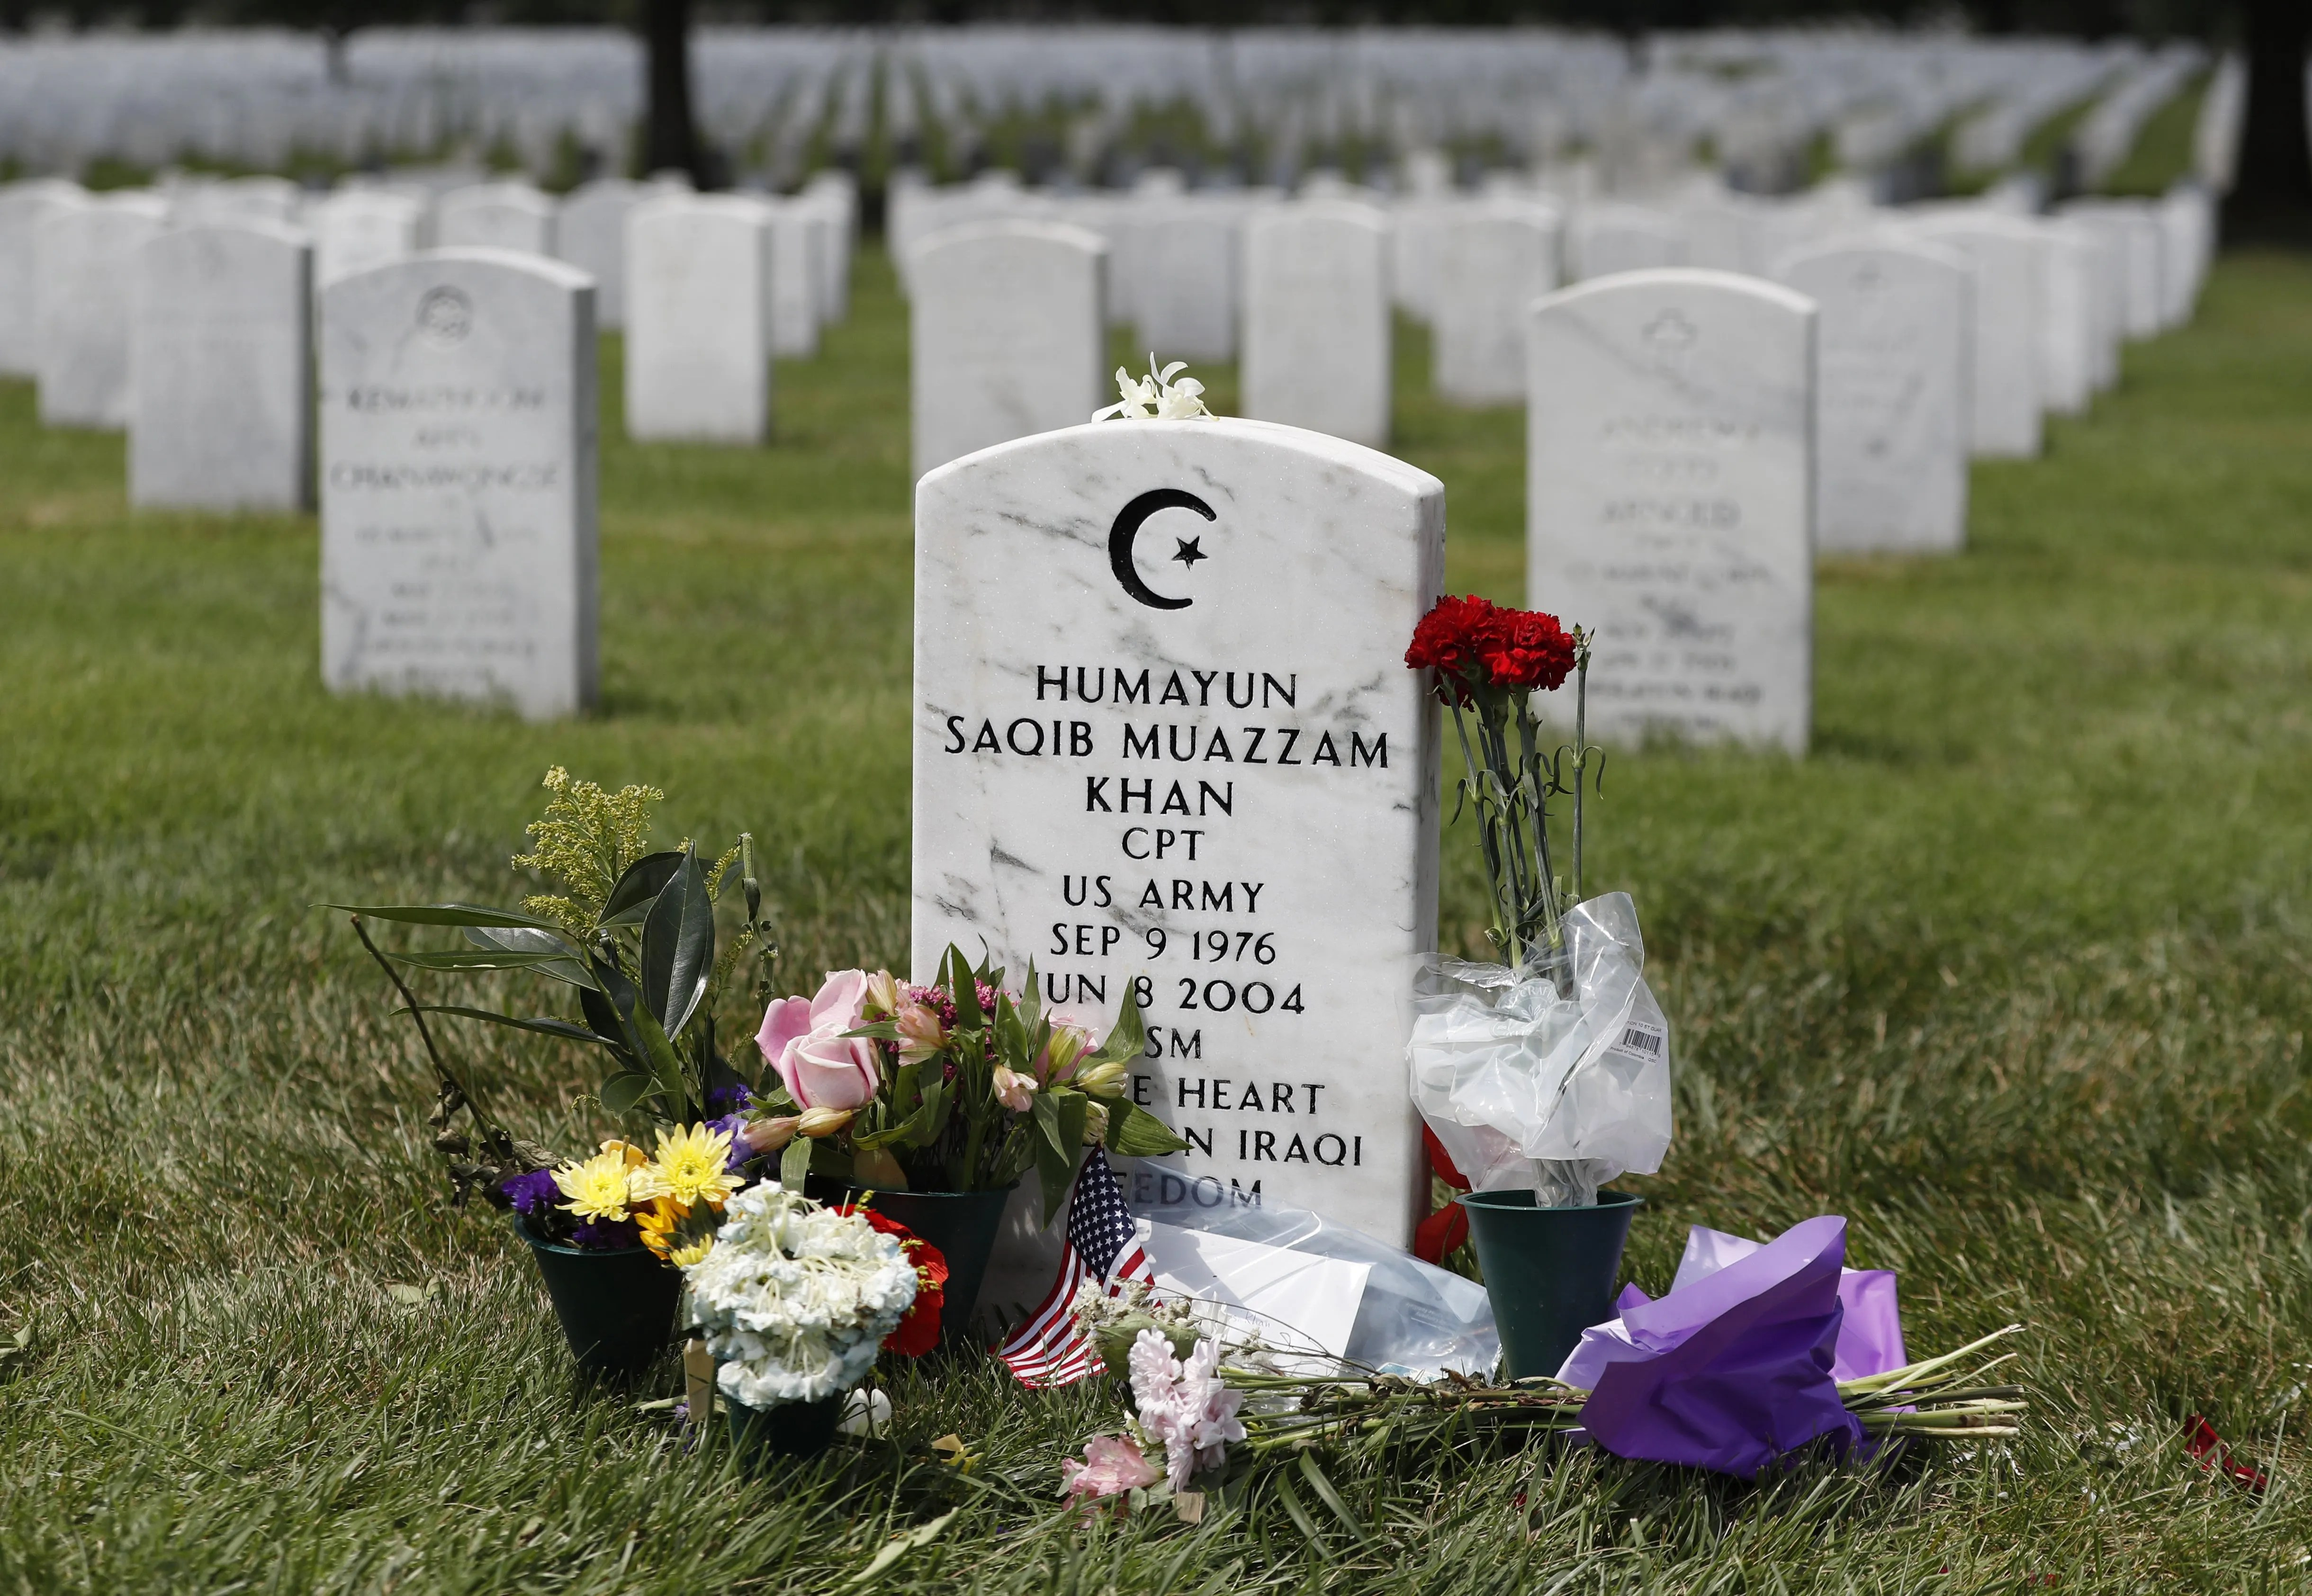 The tombstone of U.S. Army Capt. Humayun S.M. Khan is seen at Arlington National Cemetery in Arlington, Va., Monday. (Carolyn Kaster/The Associated Press)